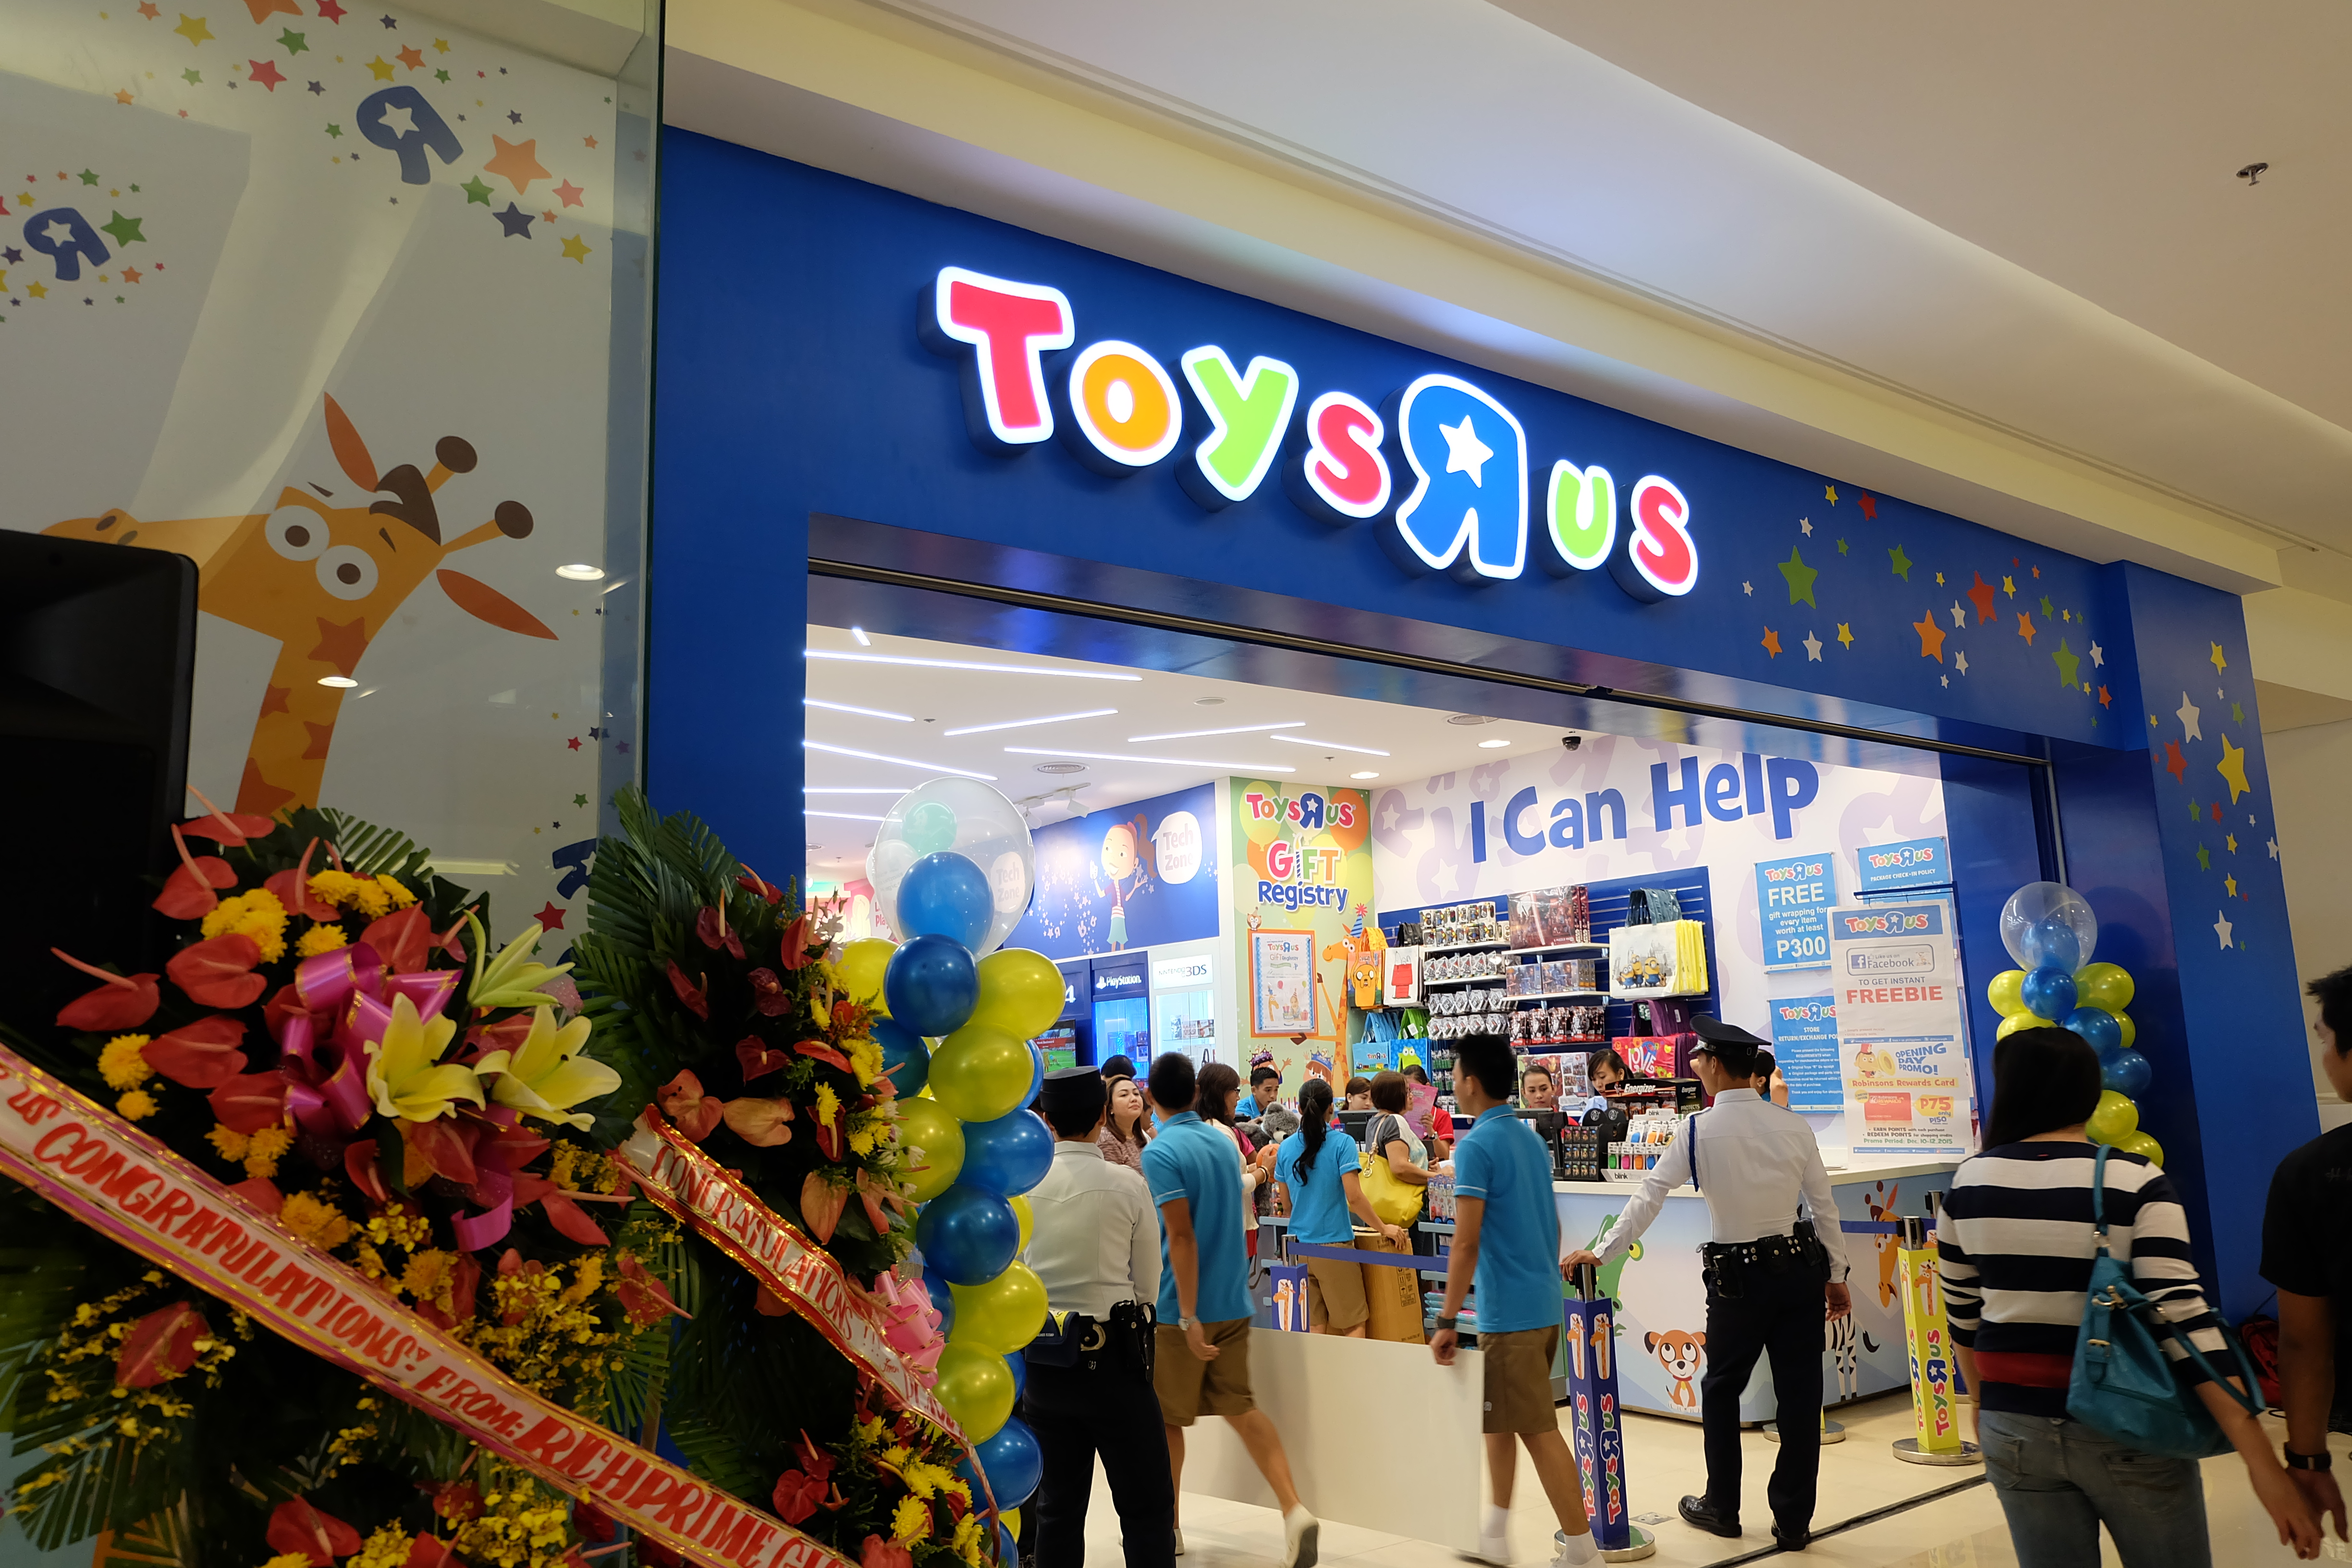 Toys R Us at The New Robinsons Galleria